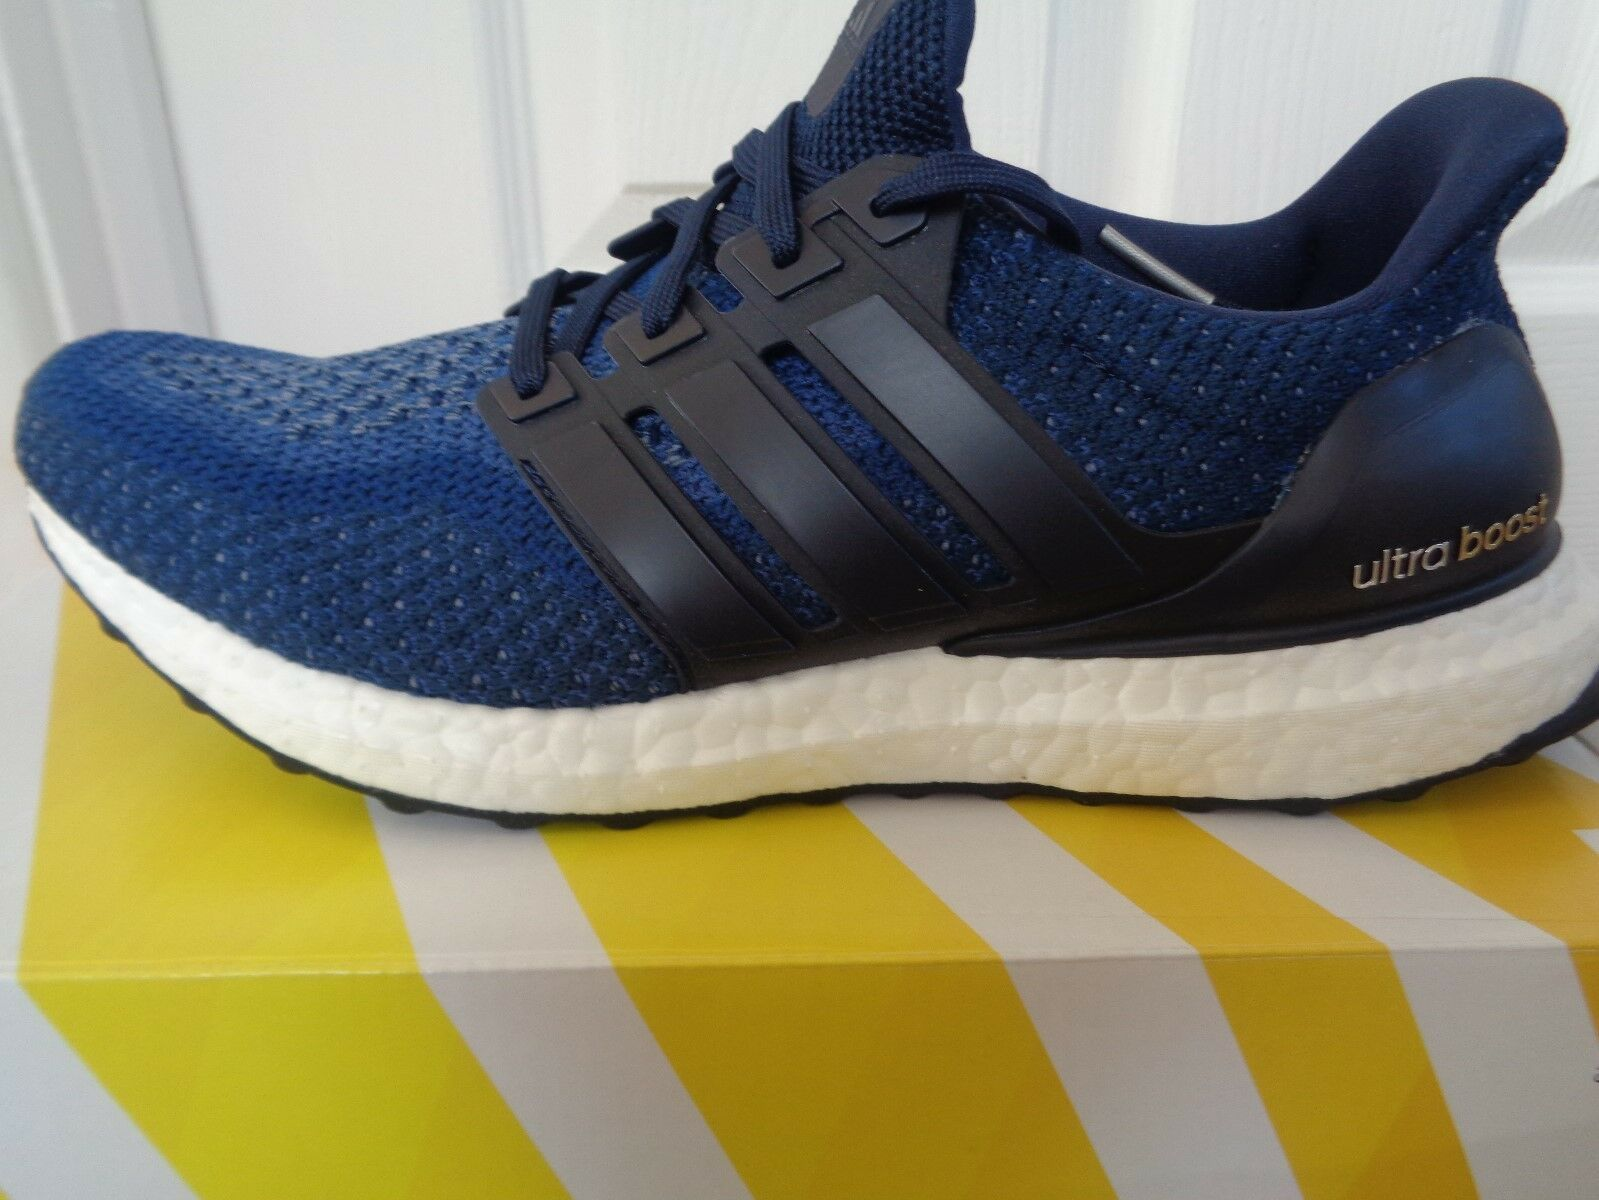 Adidas UltraBOOST sneakers m Mens running/course trainers sneakers UltraBOOST shoes AQ5928 NEW+BOX d714e0